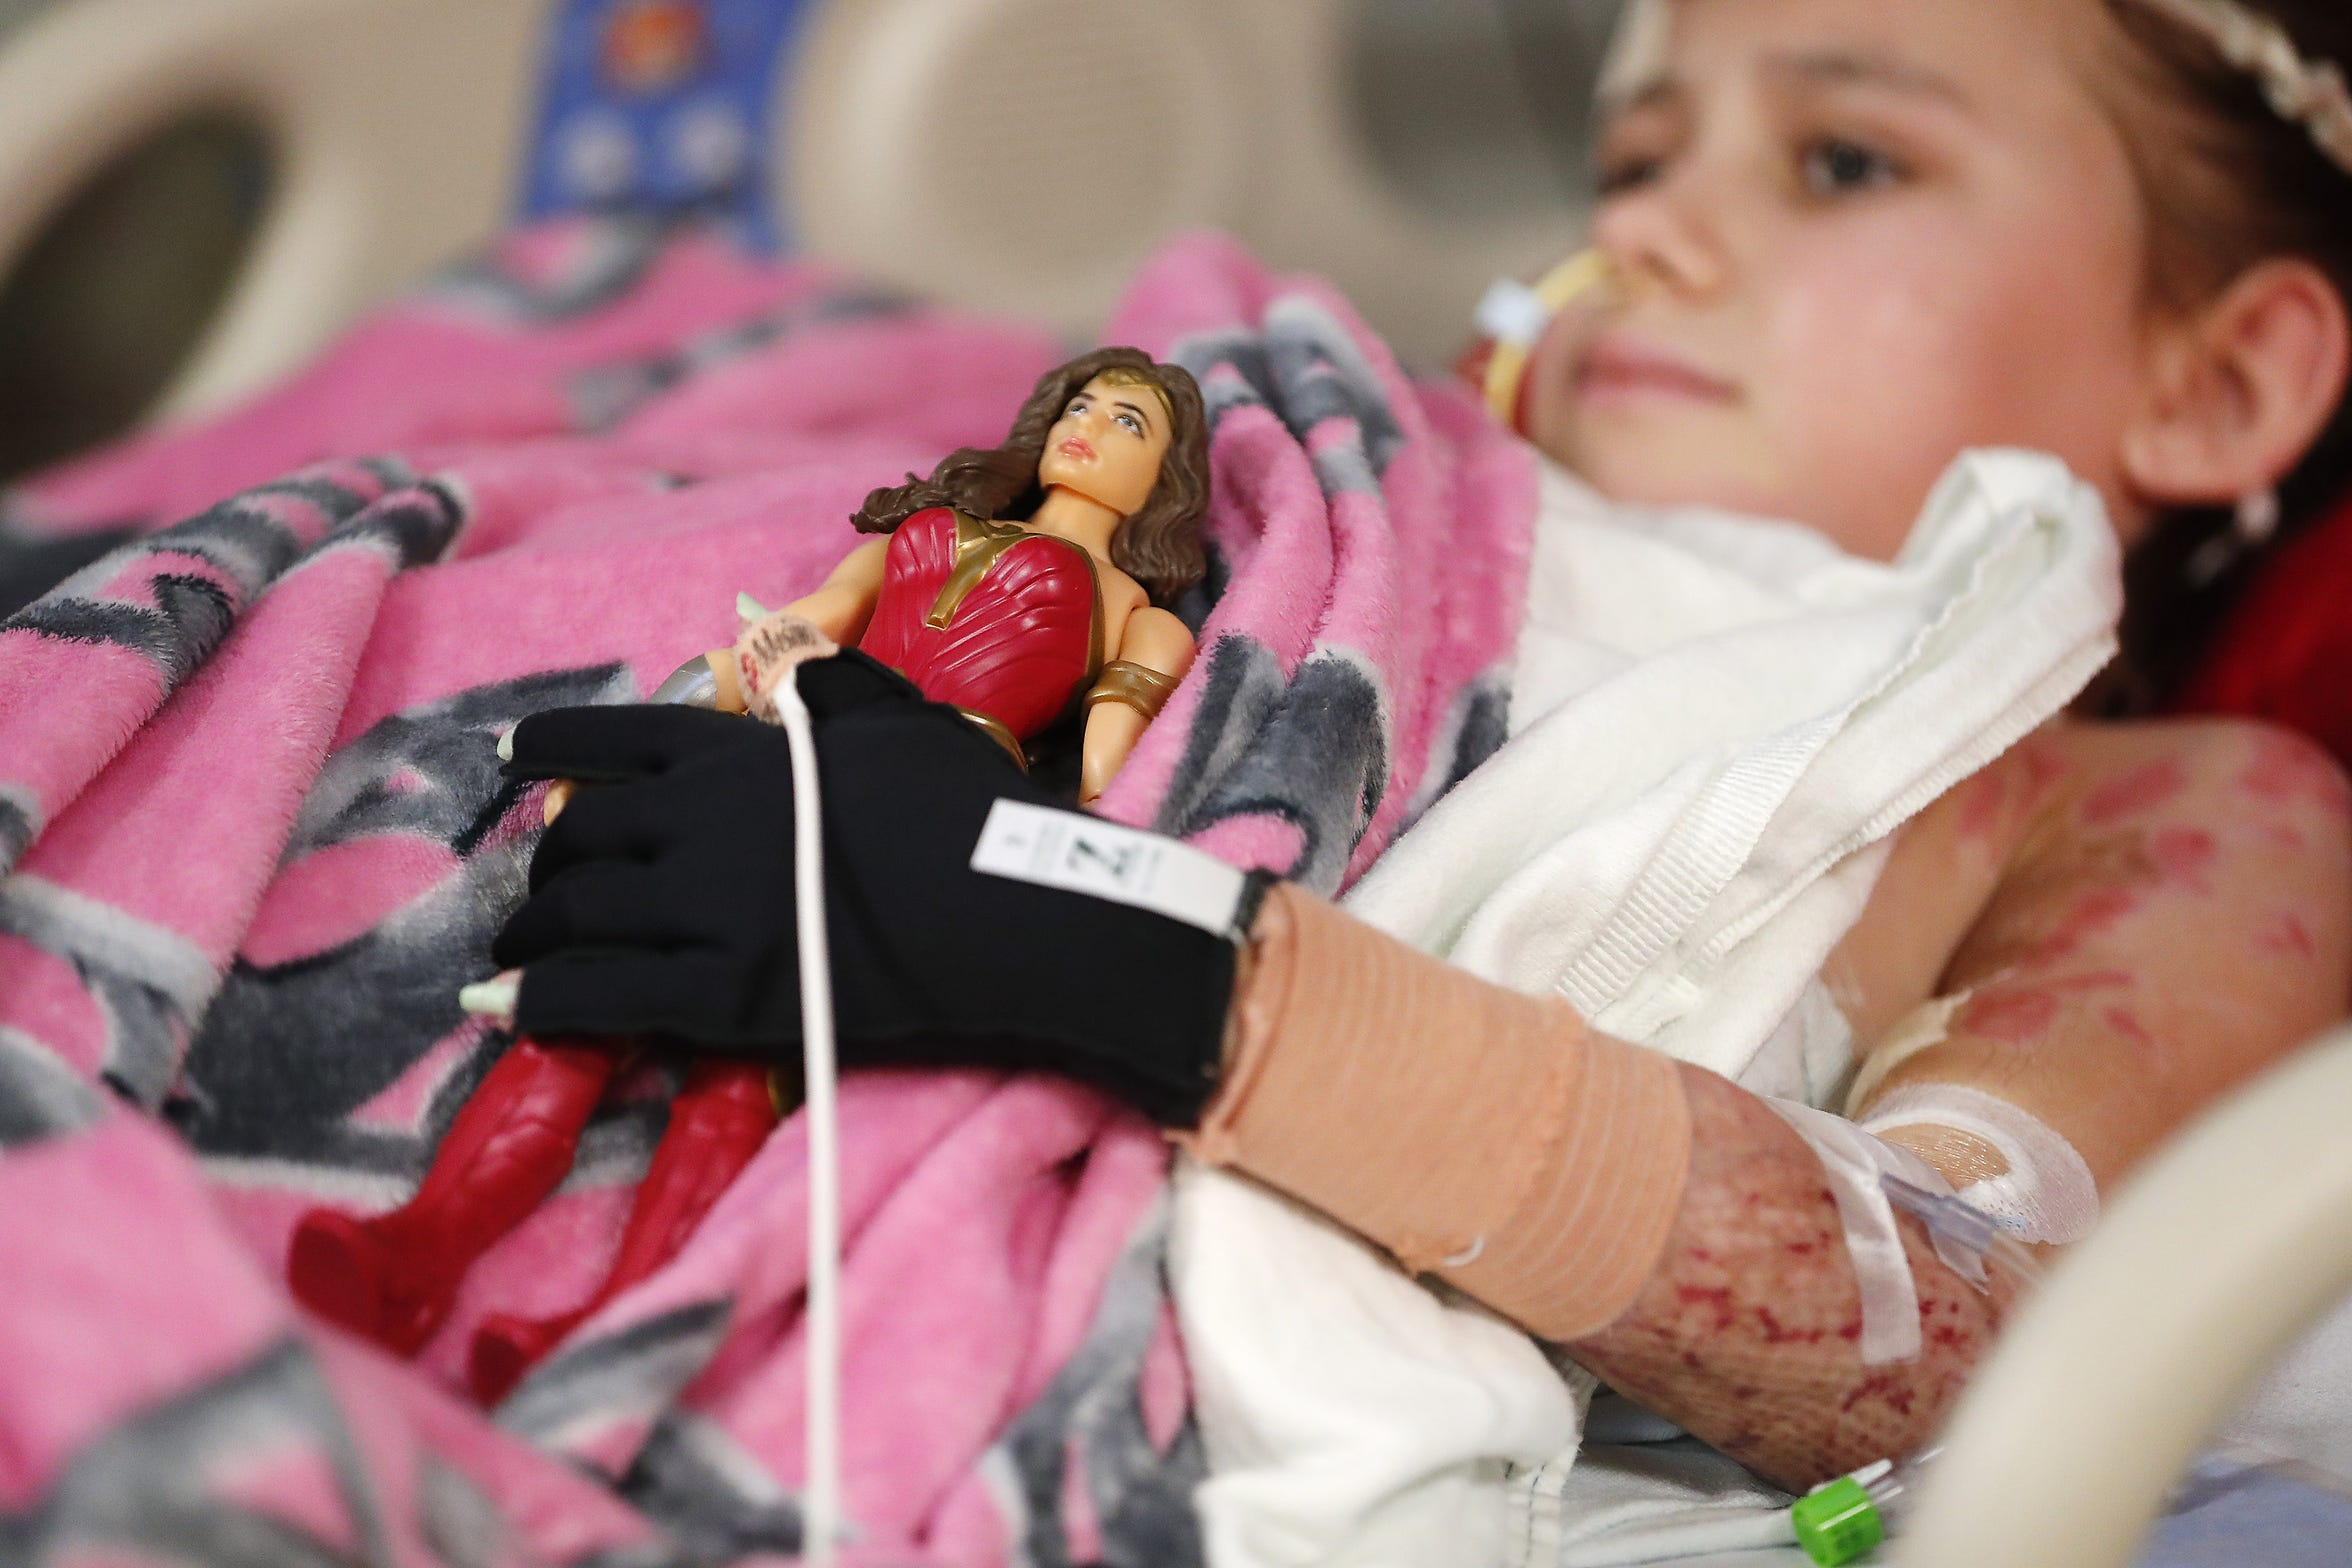 Isabella McCune holds a Wonder Woman doll before surgery at the Arizona Burn Center in Phoenix May 24, 2018. She was severely burned in a home accident in March.